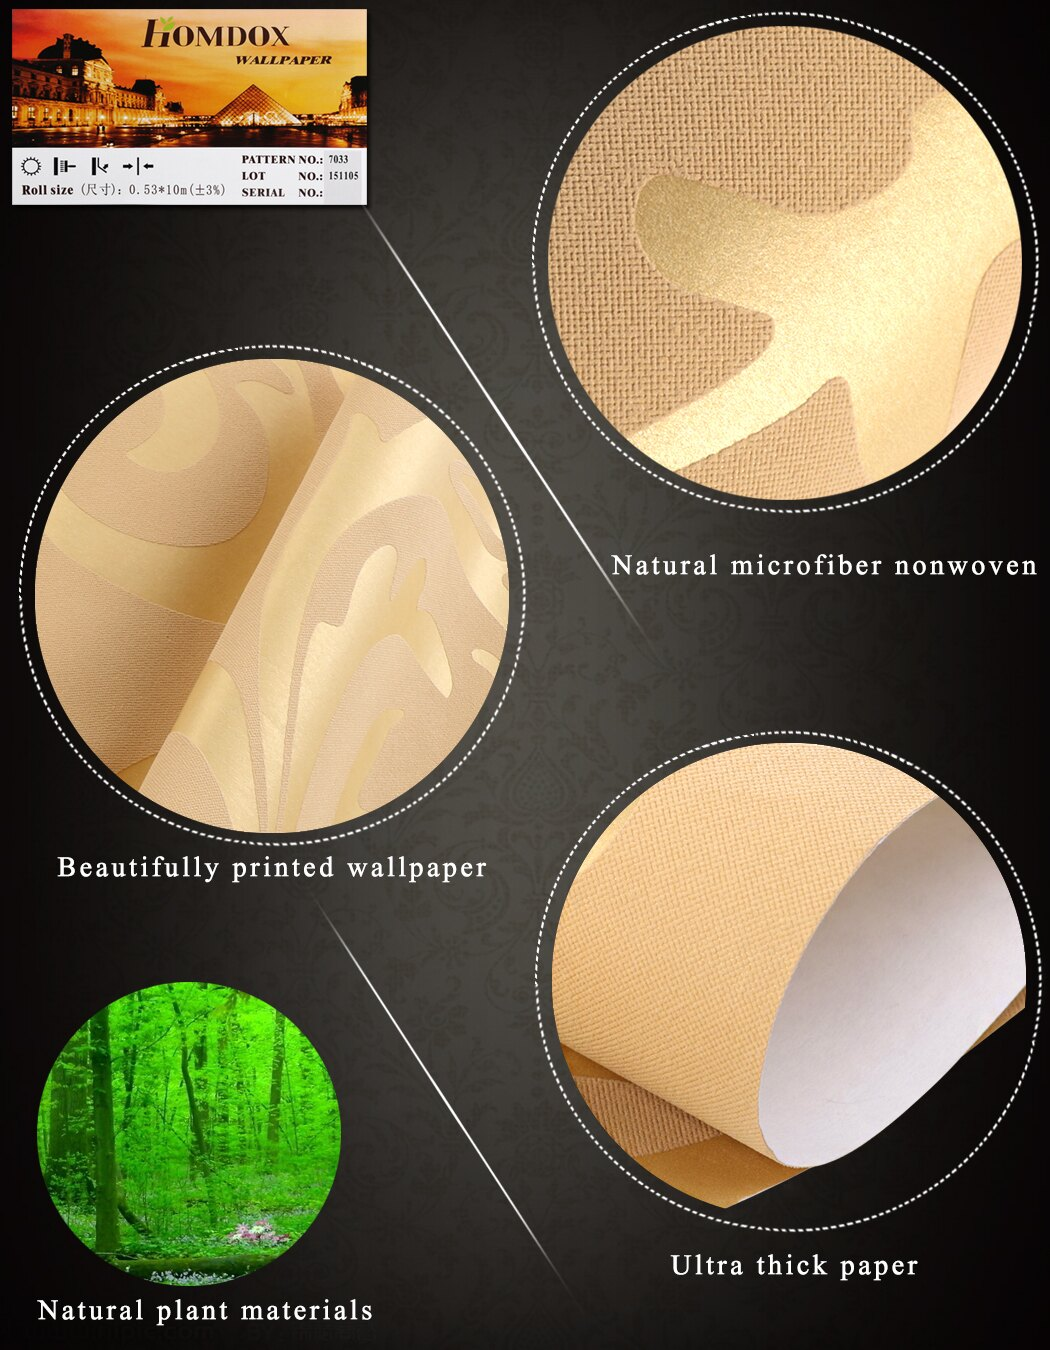 Print Embossed Non-woven 3D Rolls 10m Wallpaper Bedroom Home Wall Decor Wall Sticker 7